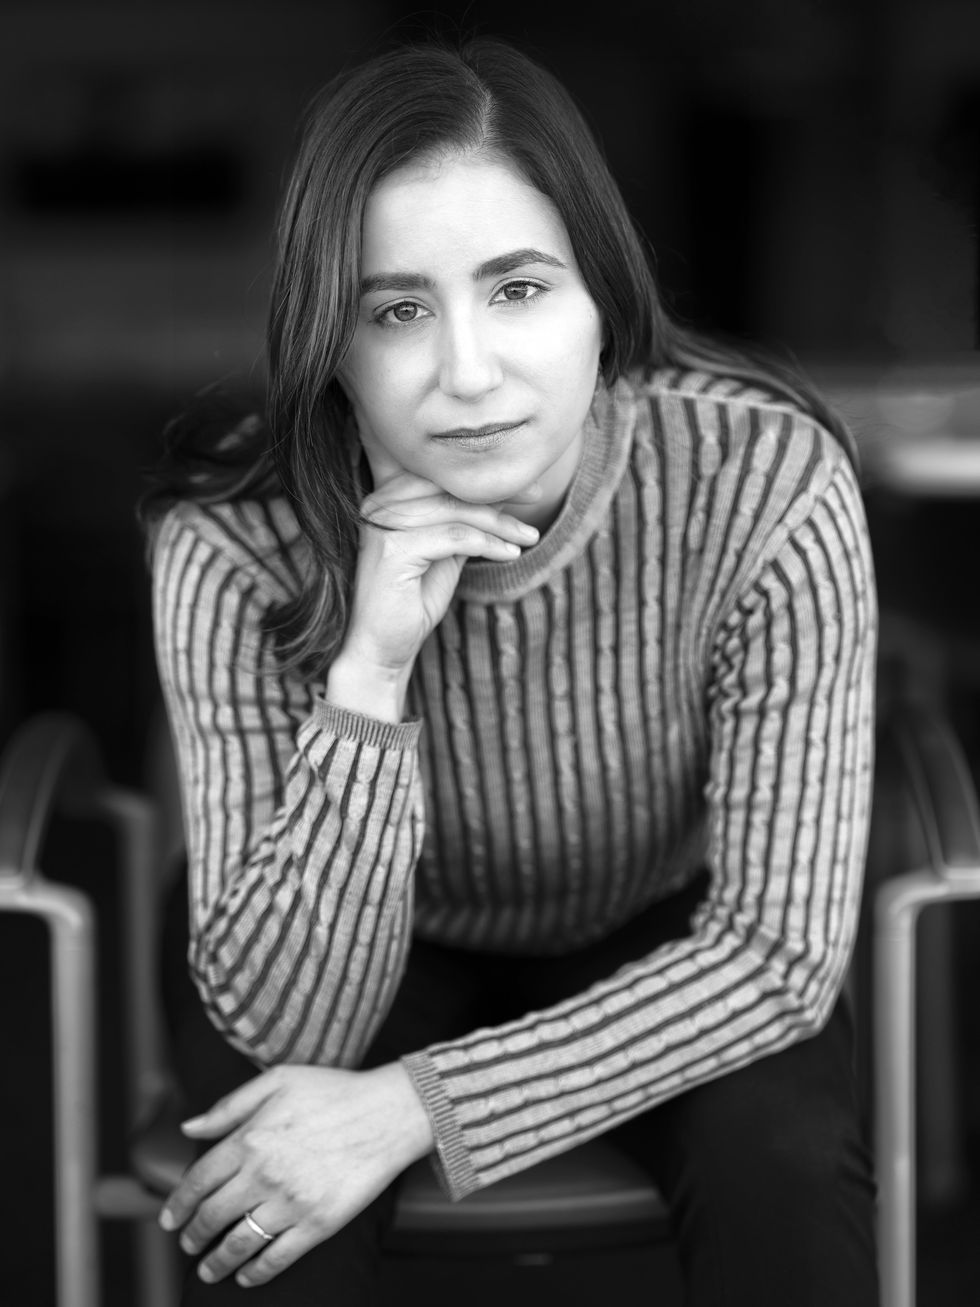 black and white photo of a woman with dark hair and a striped shirt